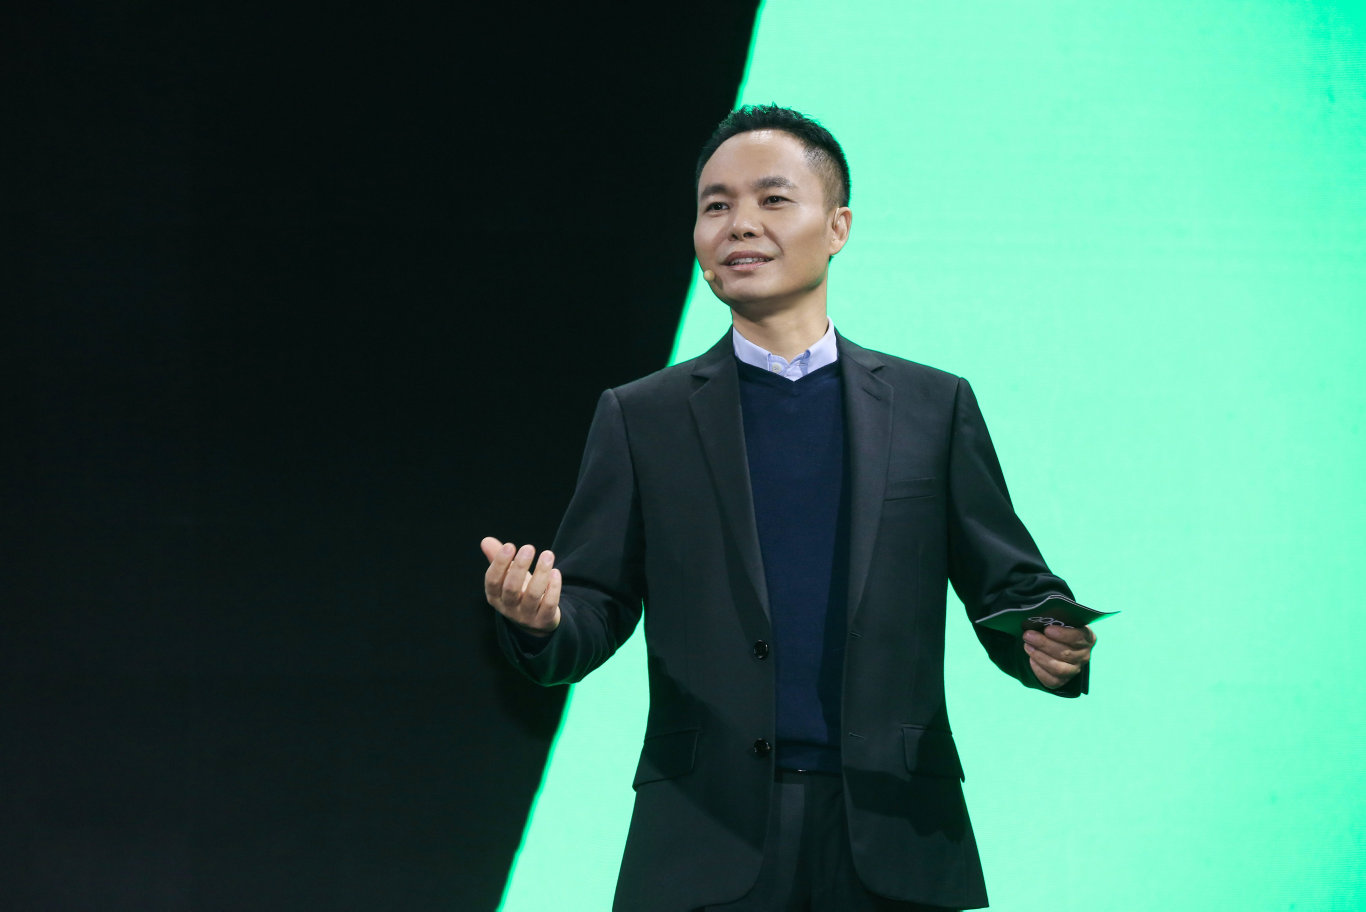 OPPO founder and CEO Tony Chen says smartphones have been a